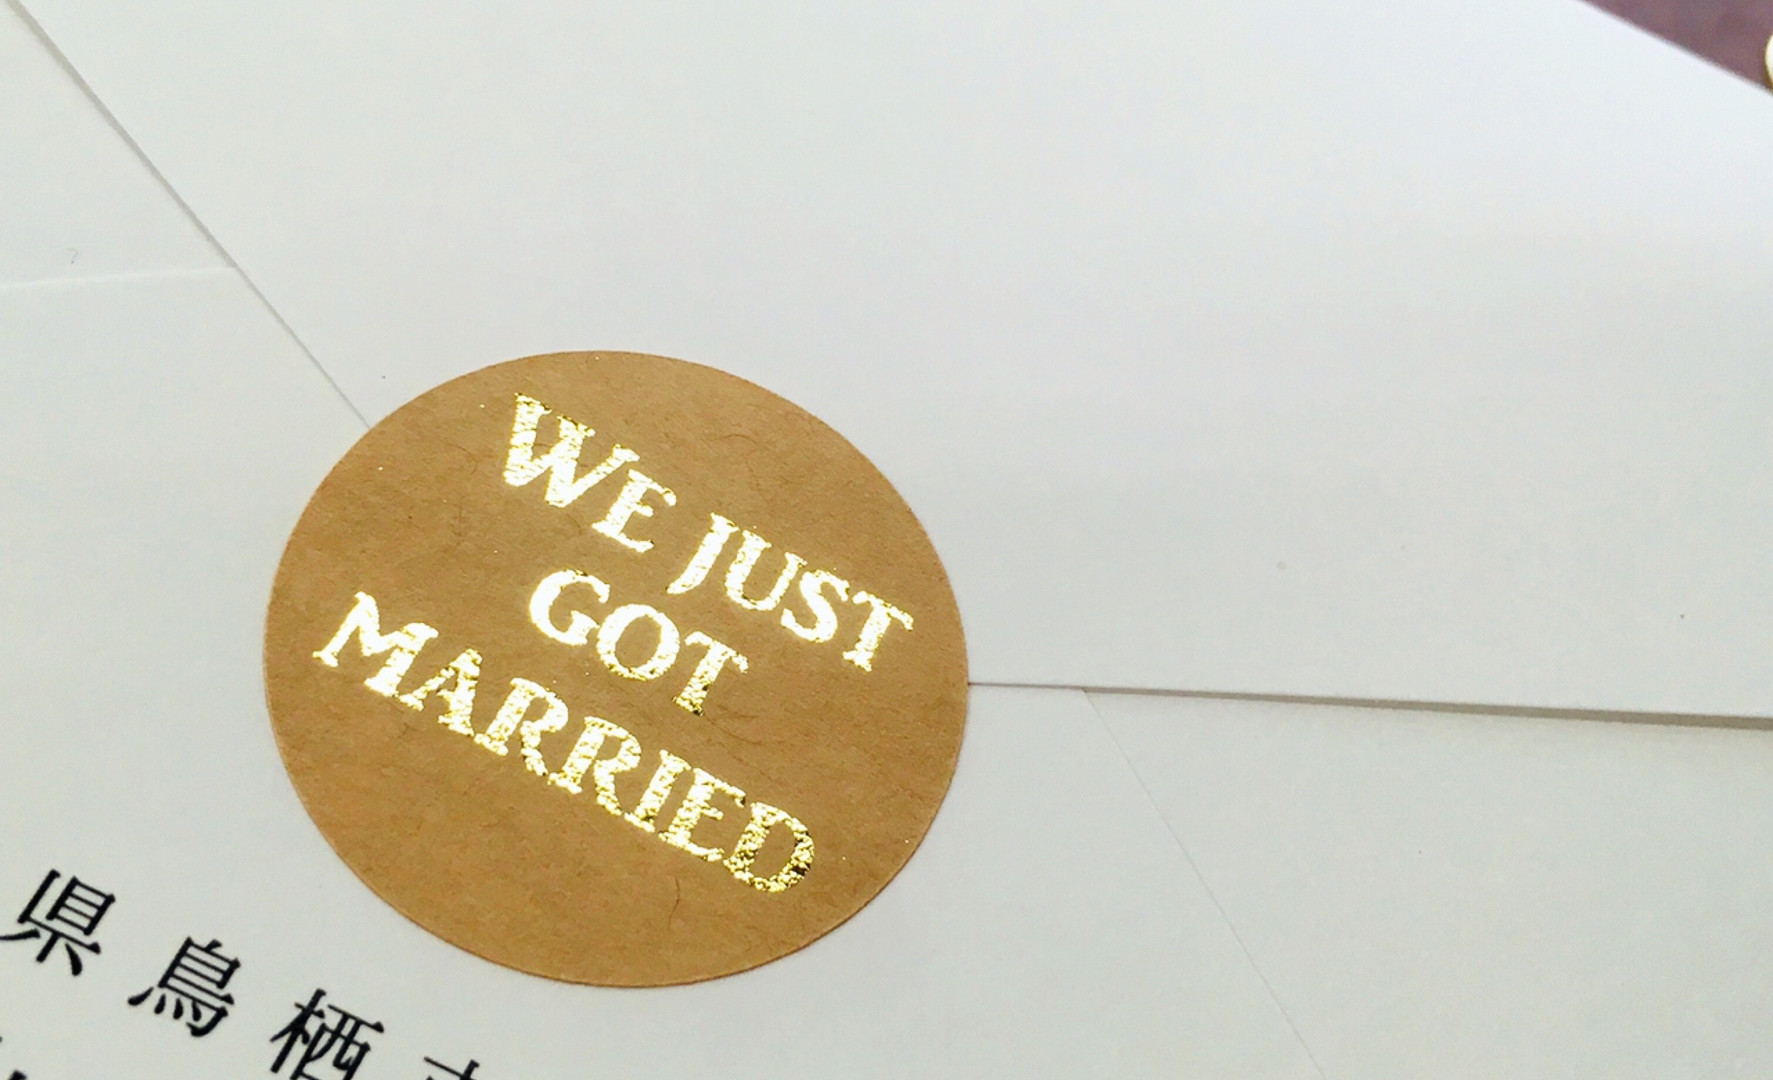 Just married デザイン6-シール.jpg